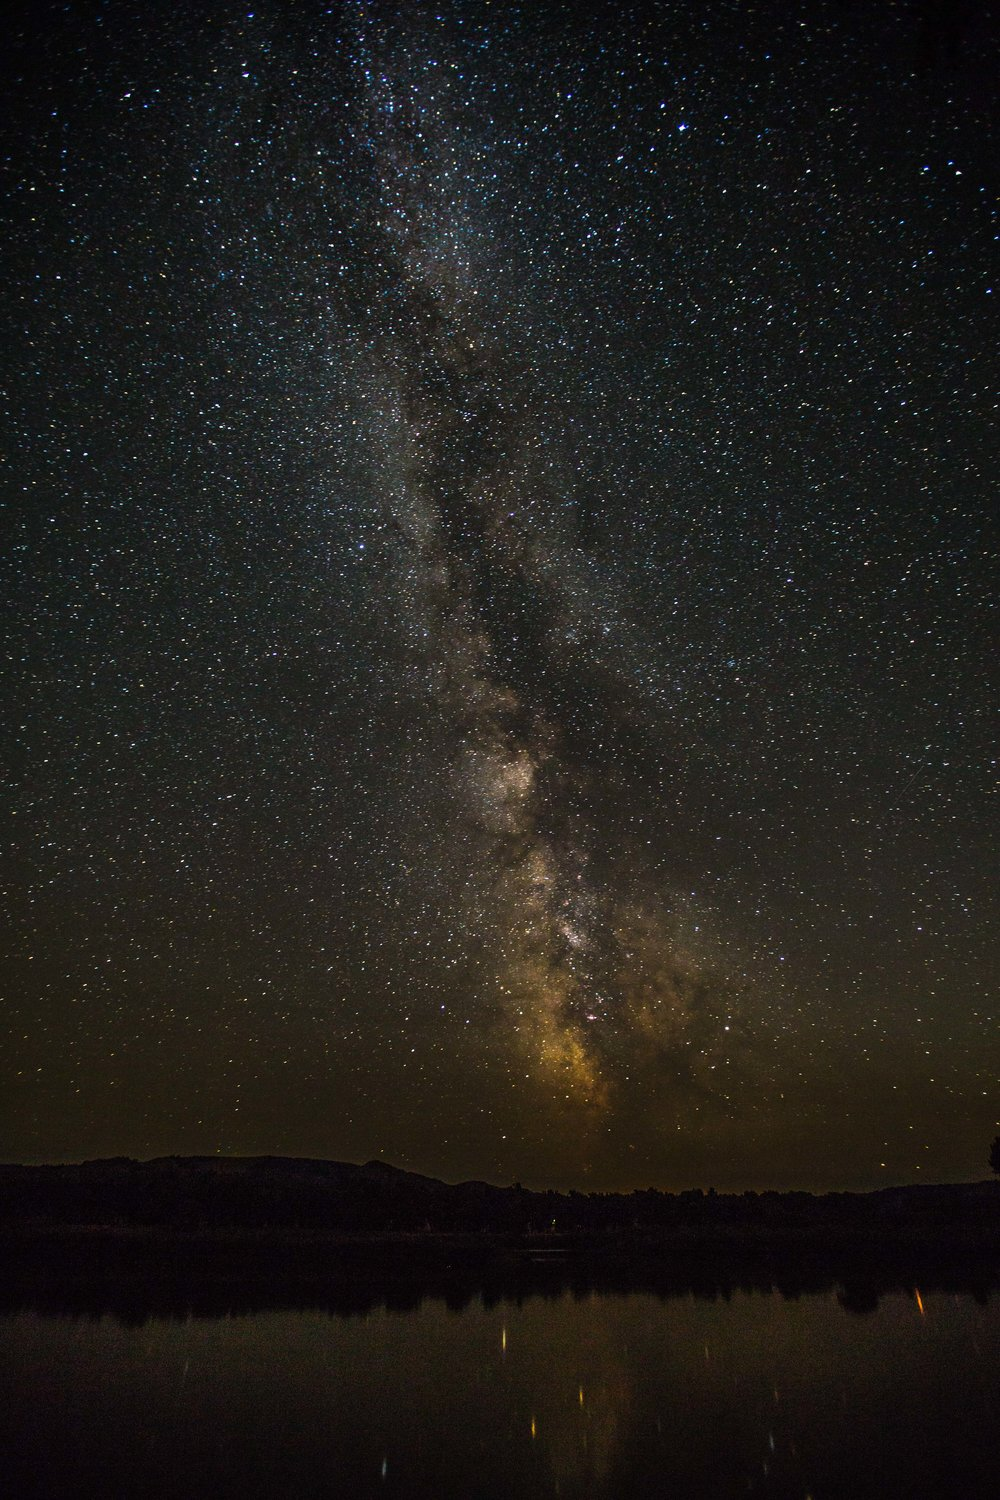 - Milky Way over the Missouri River. Montana is Big Sky country, and I don't think we've ever seen so many stars.